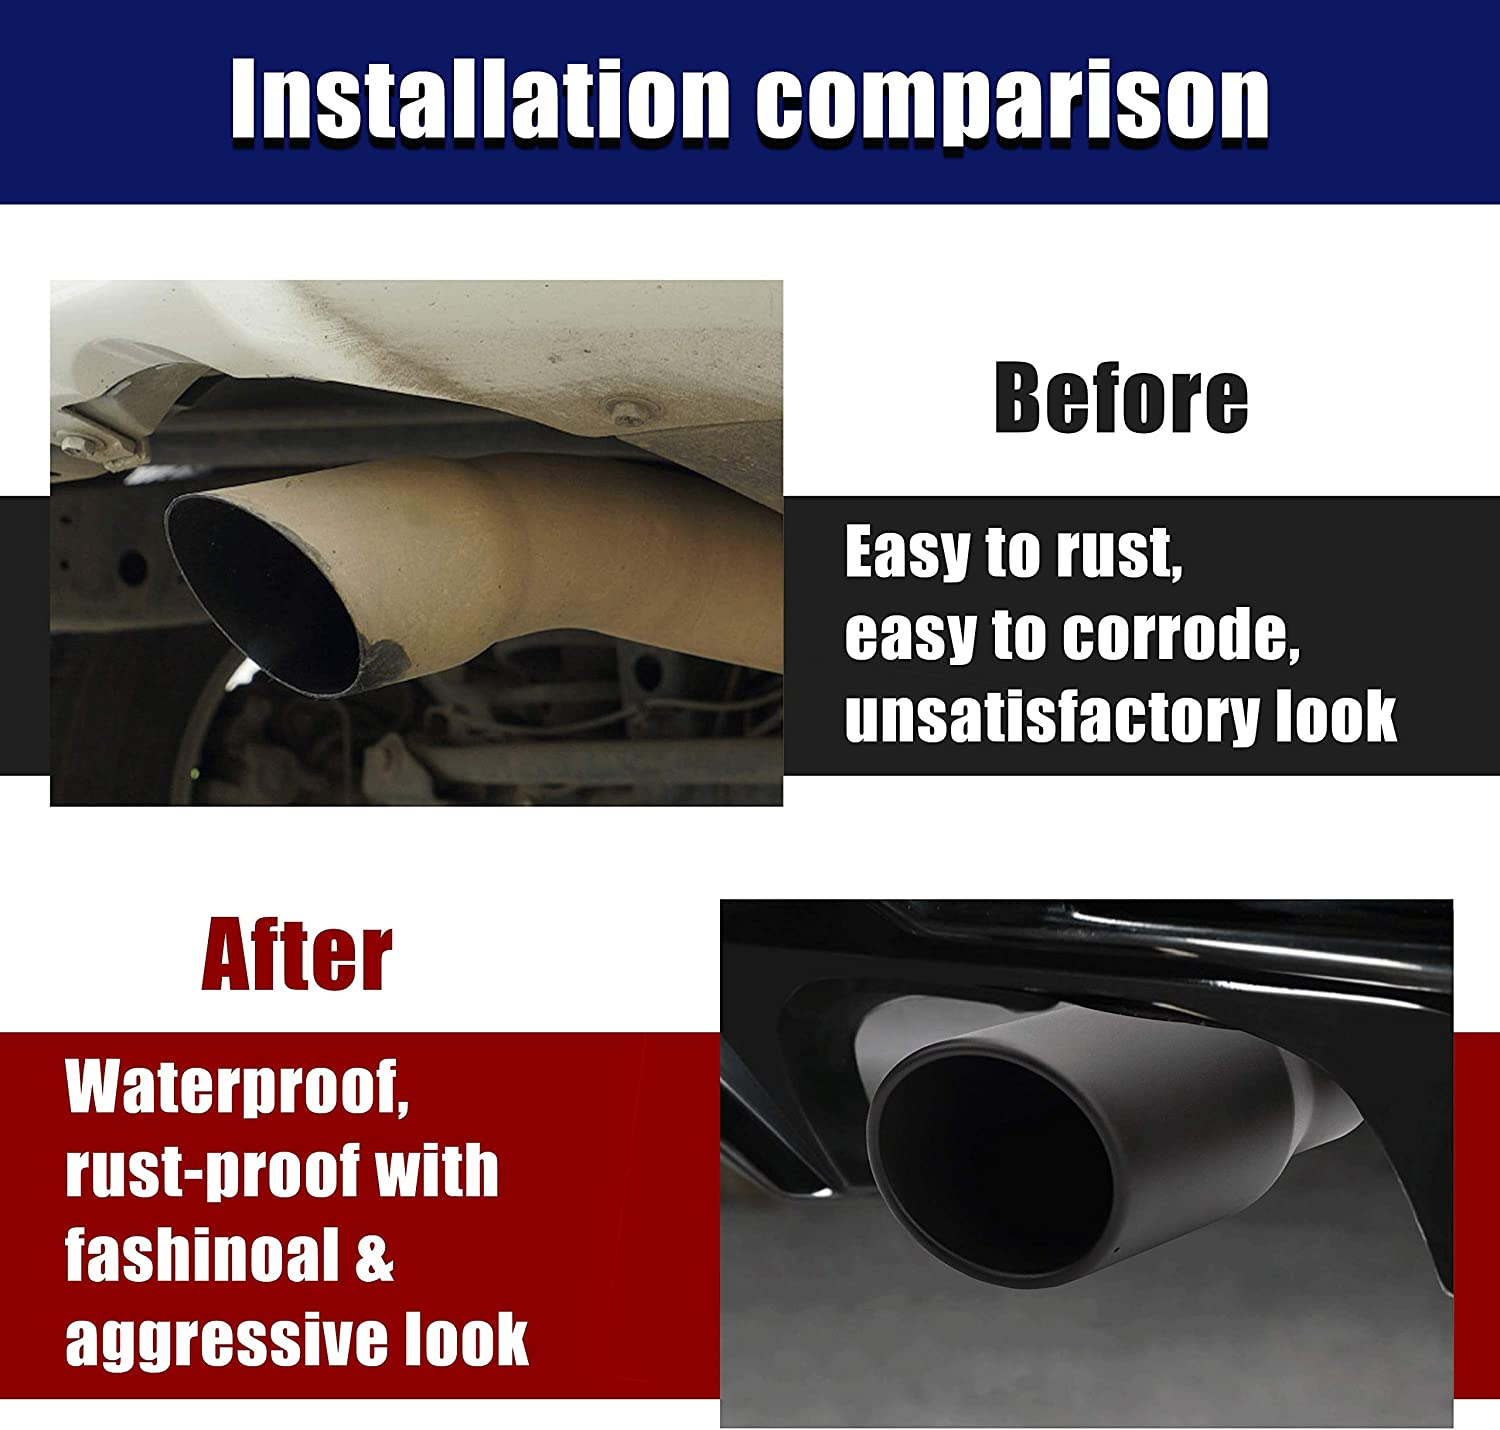 Black Diesel Exhaust Tip 4 to 6,Rolled Angle Cut TailTip 12 Long,4x6x12 Bolt//Clamp On Design